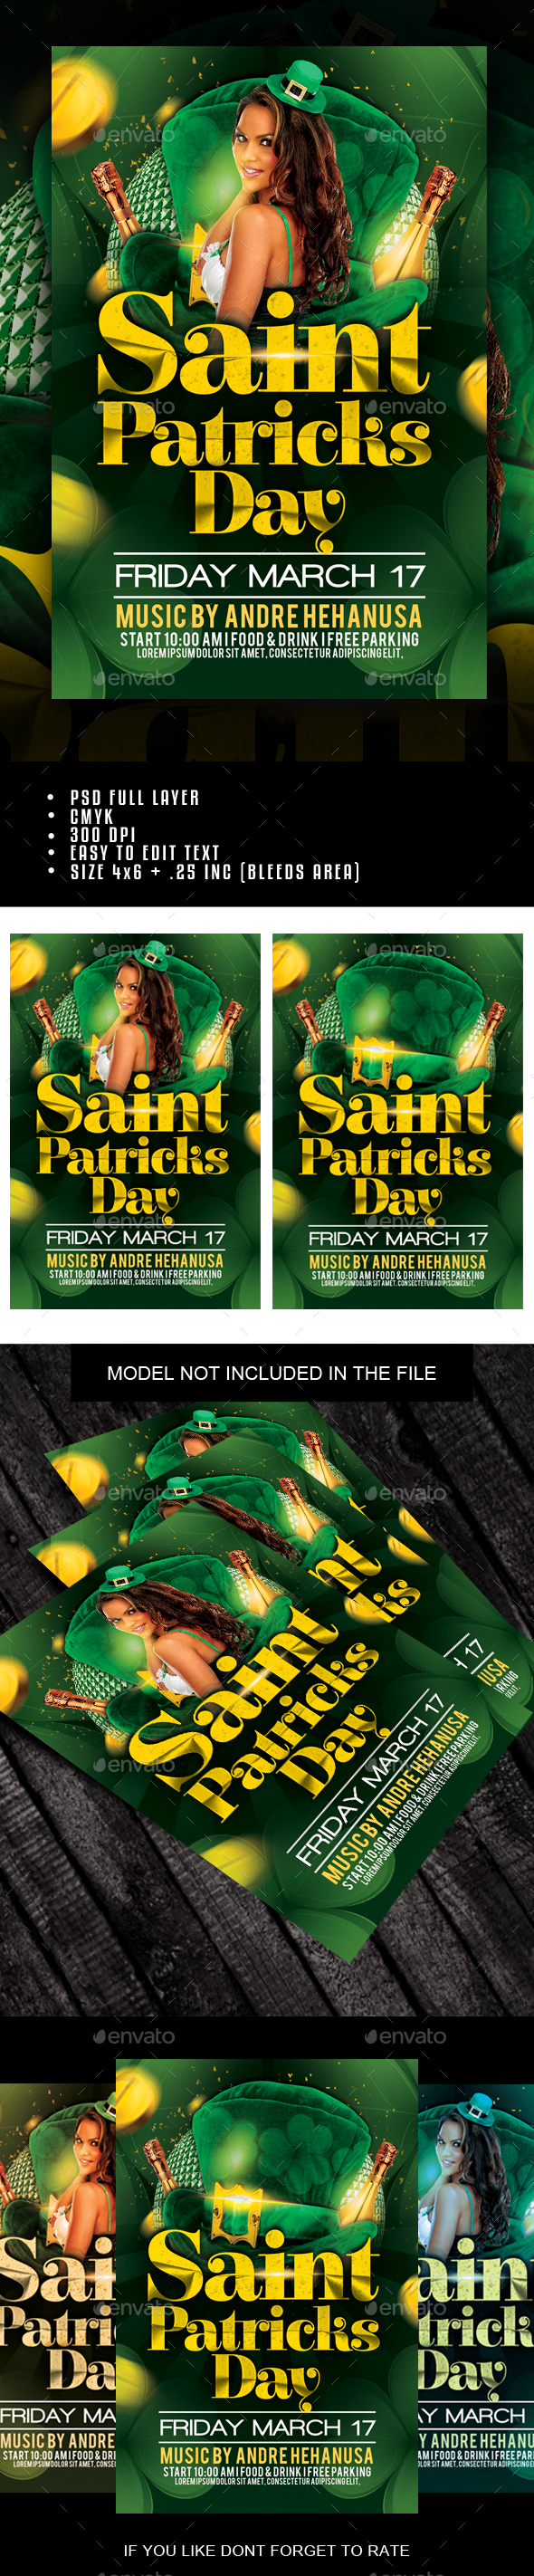 Saint Patricks Day Flyer - Holidays Events